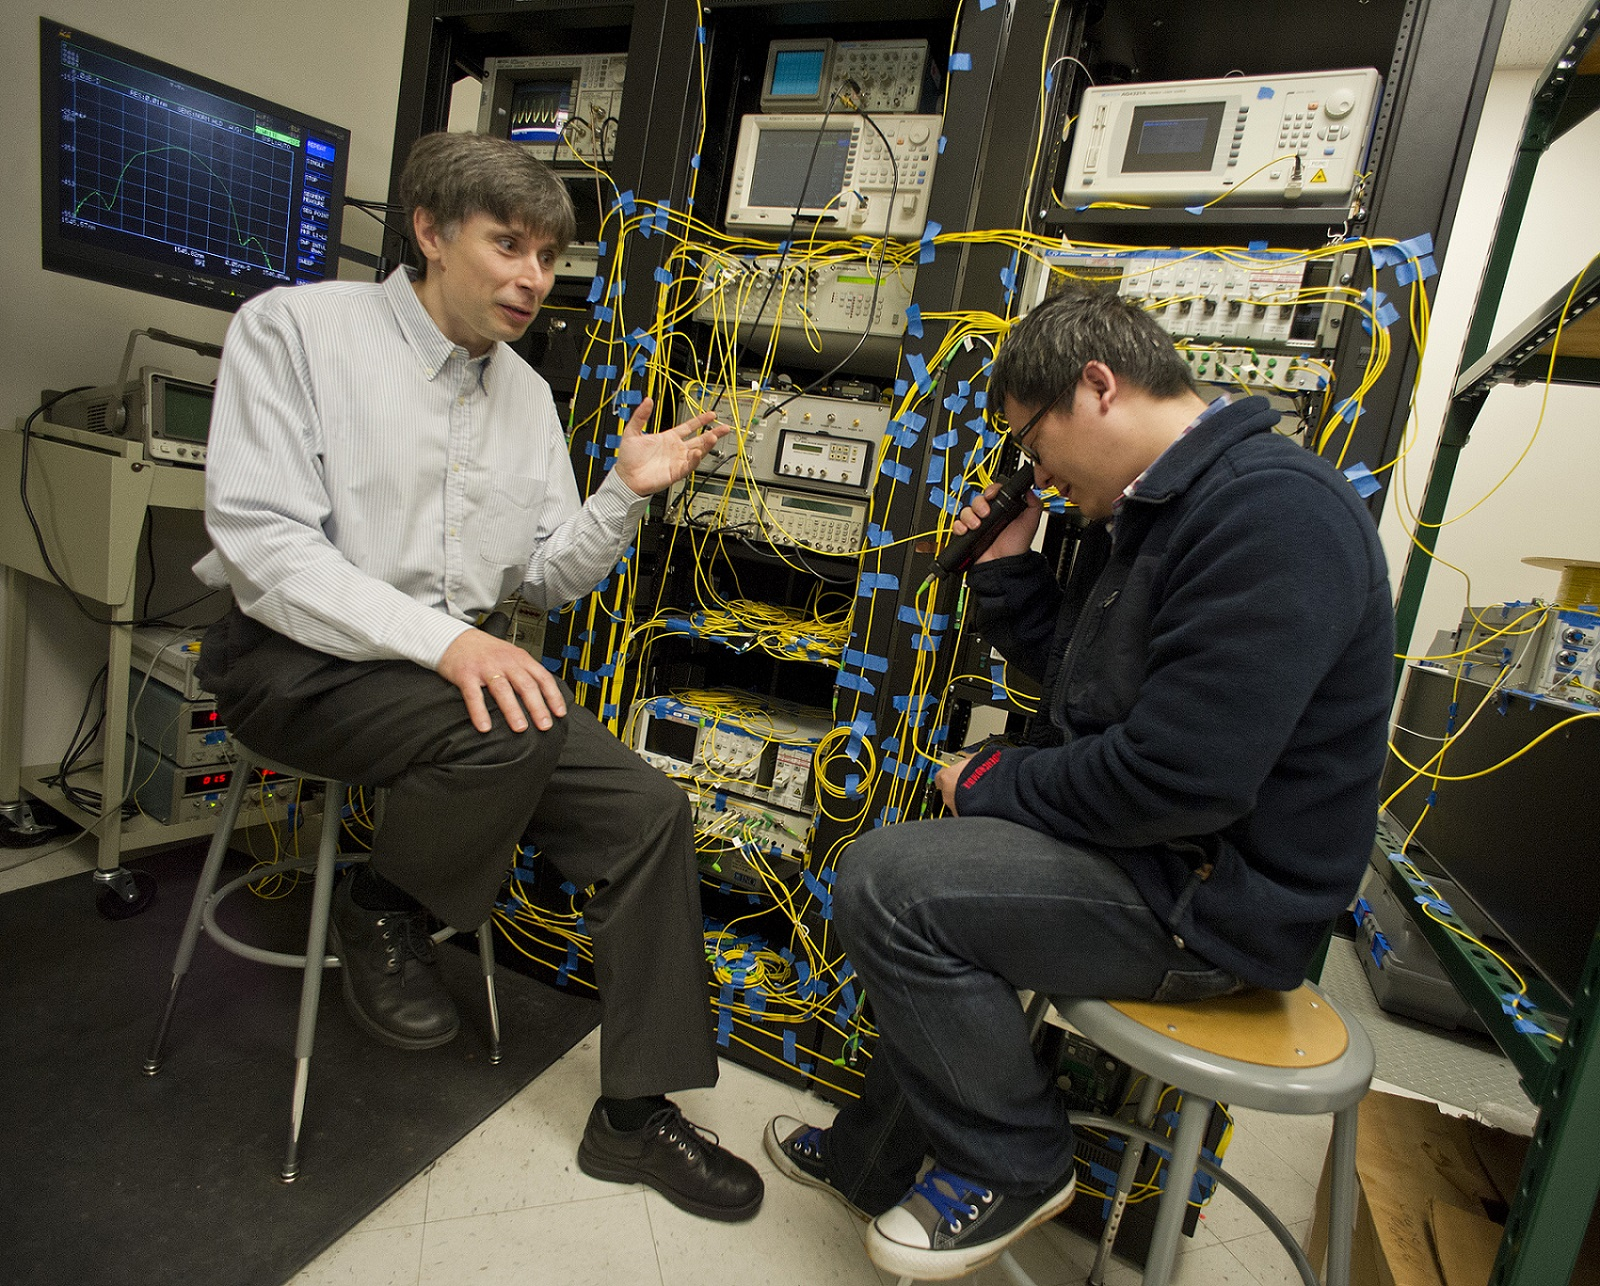 Michael Vasilyev, left, a UTA electrical engineering professor, speaks with one of his graduate students.